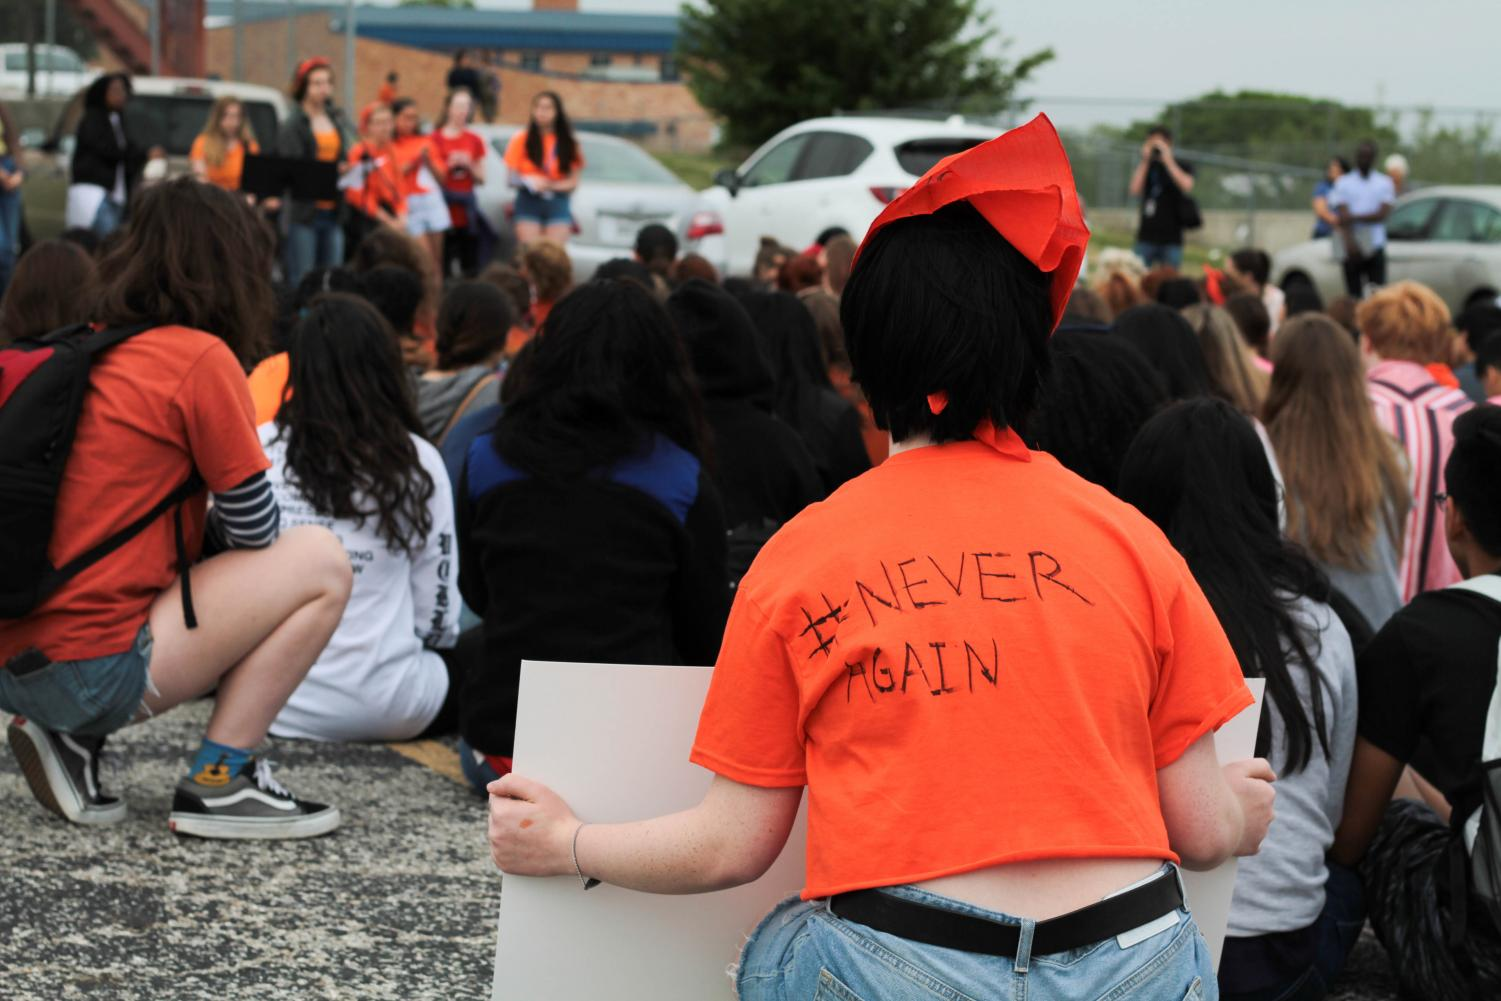 Students listen as senior Isabel Lerman reads a list of student demands to make schools safer. Between 300 and 400 students walked out of first period at 10 a.m. to participate in a McCallum walkout, part of National Student Walkout to advocate for tighter gun control laws. Photo by Ian Clennan.